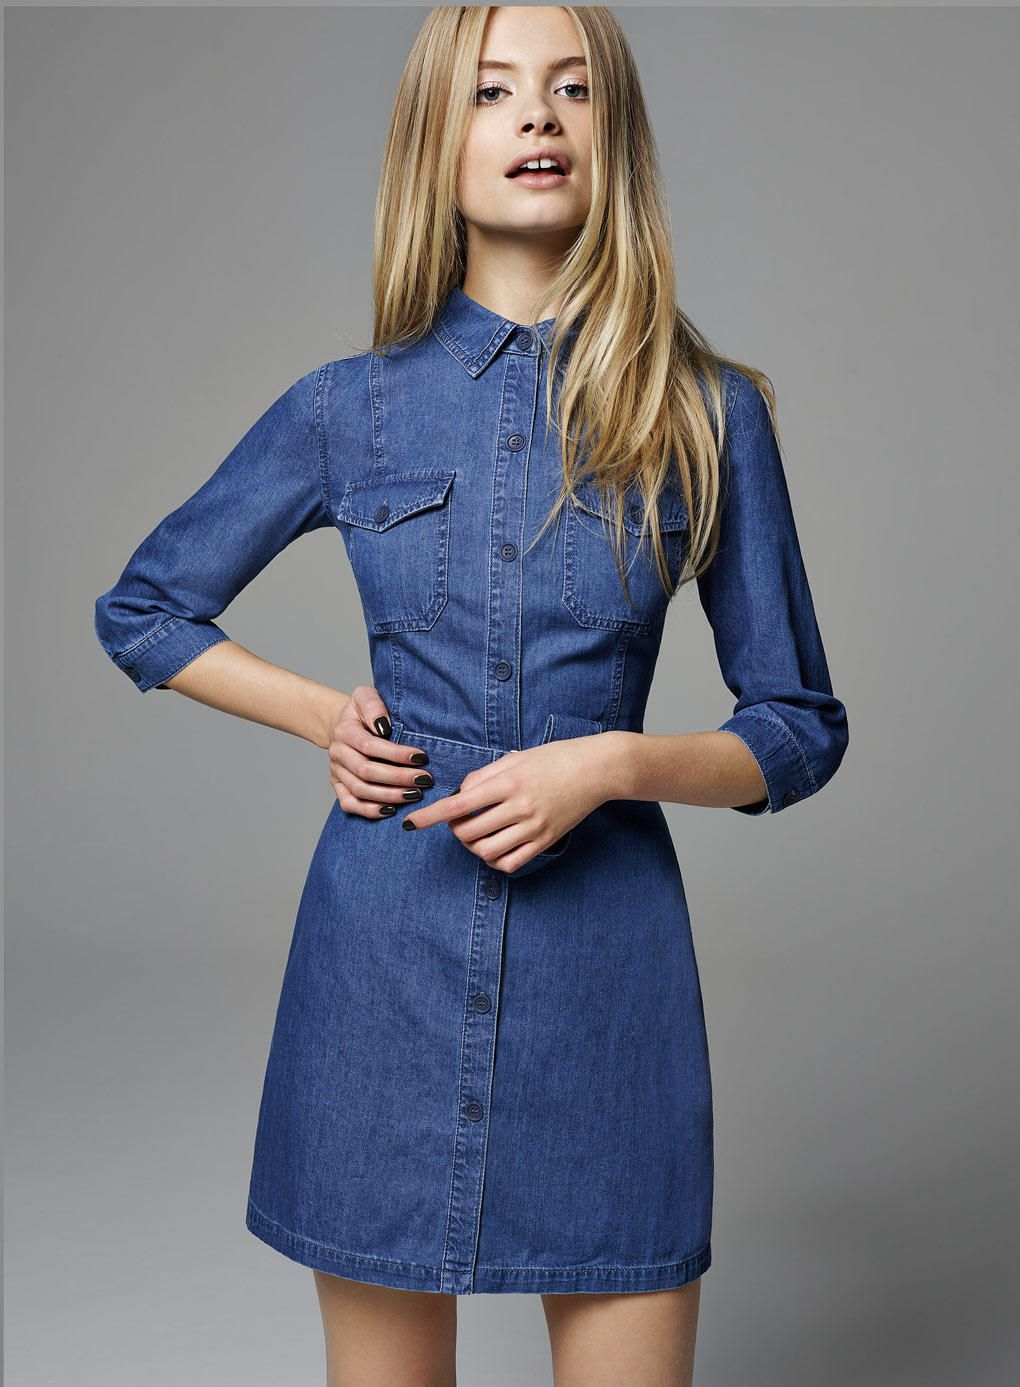 188ebd82aad Utility Denim Shirt Dress - Miss Selfridge from Miss Selfridge. Saved to  Things I want as gifts